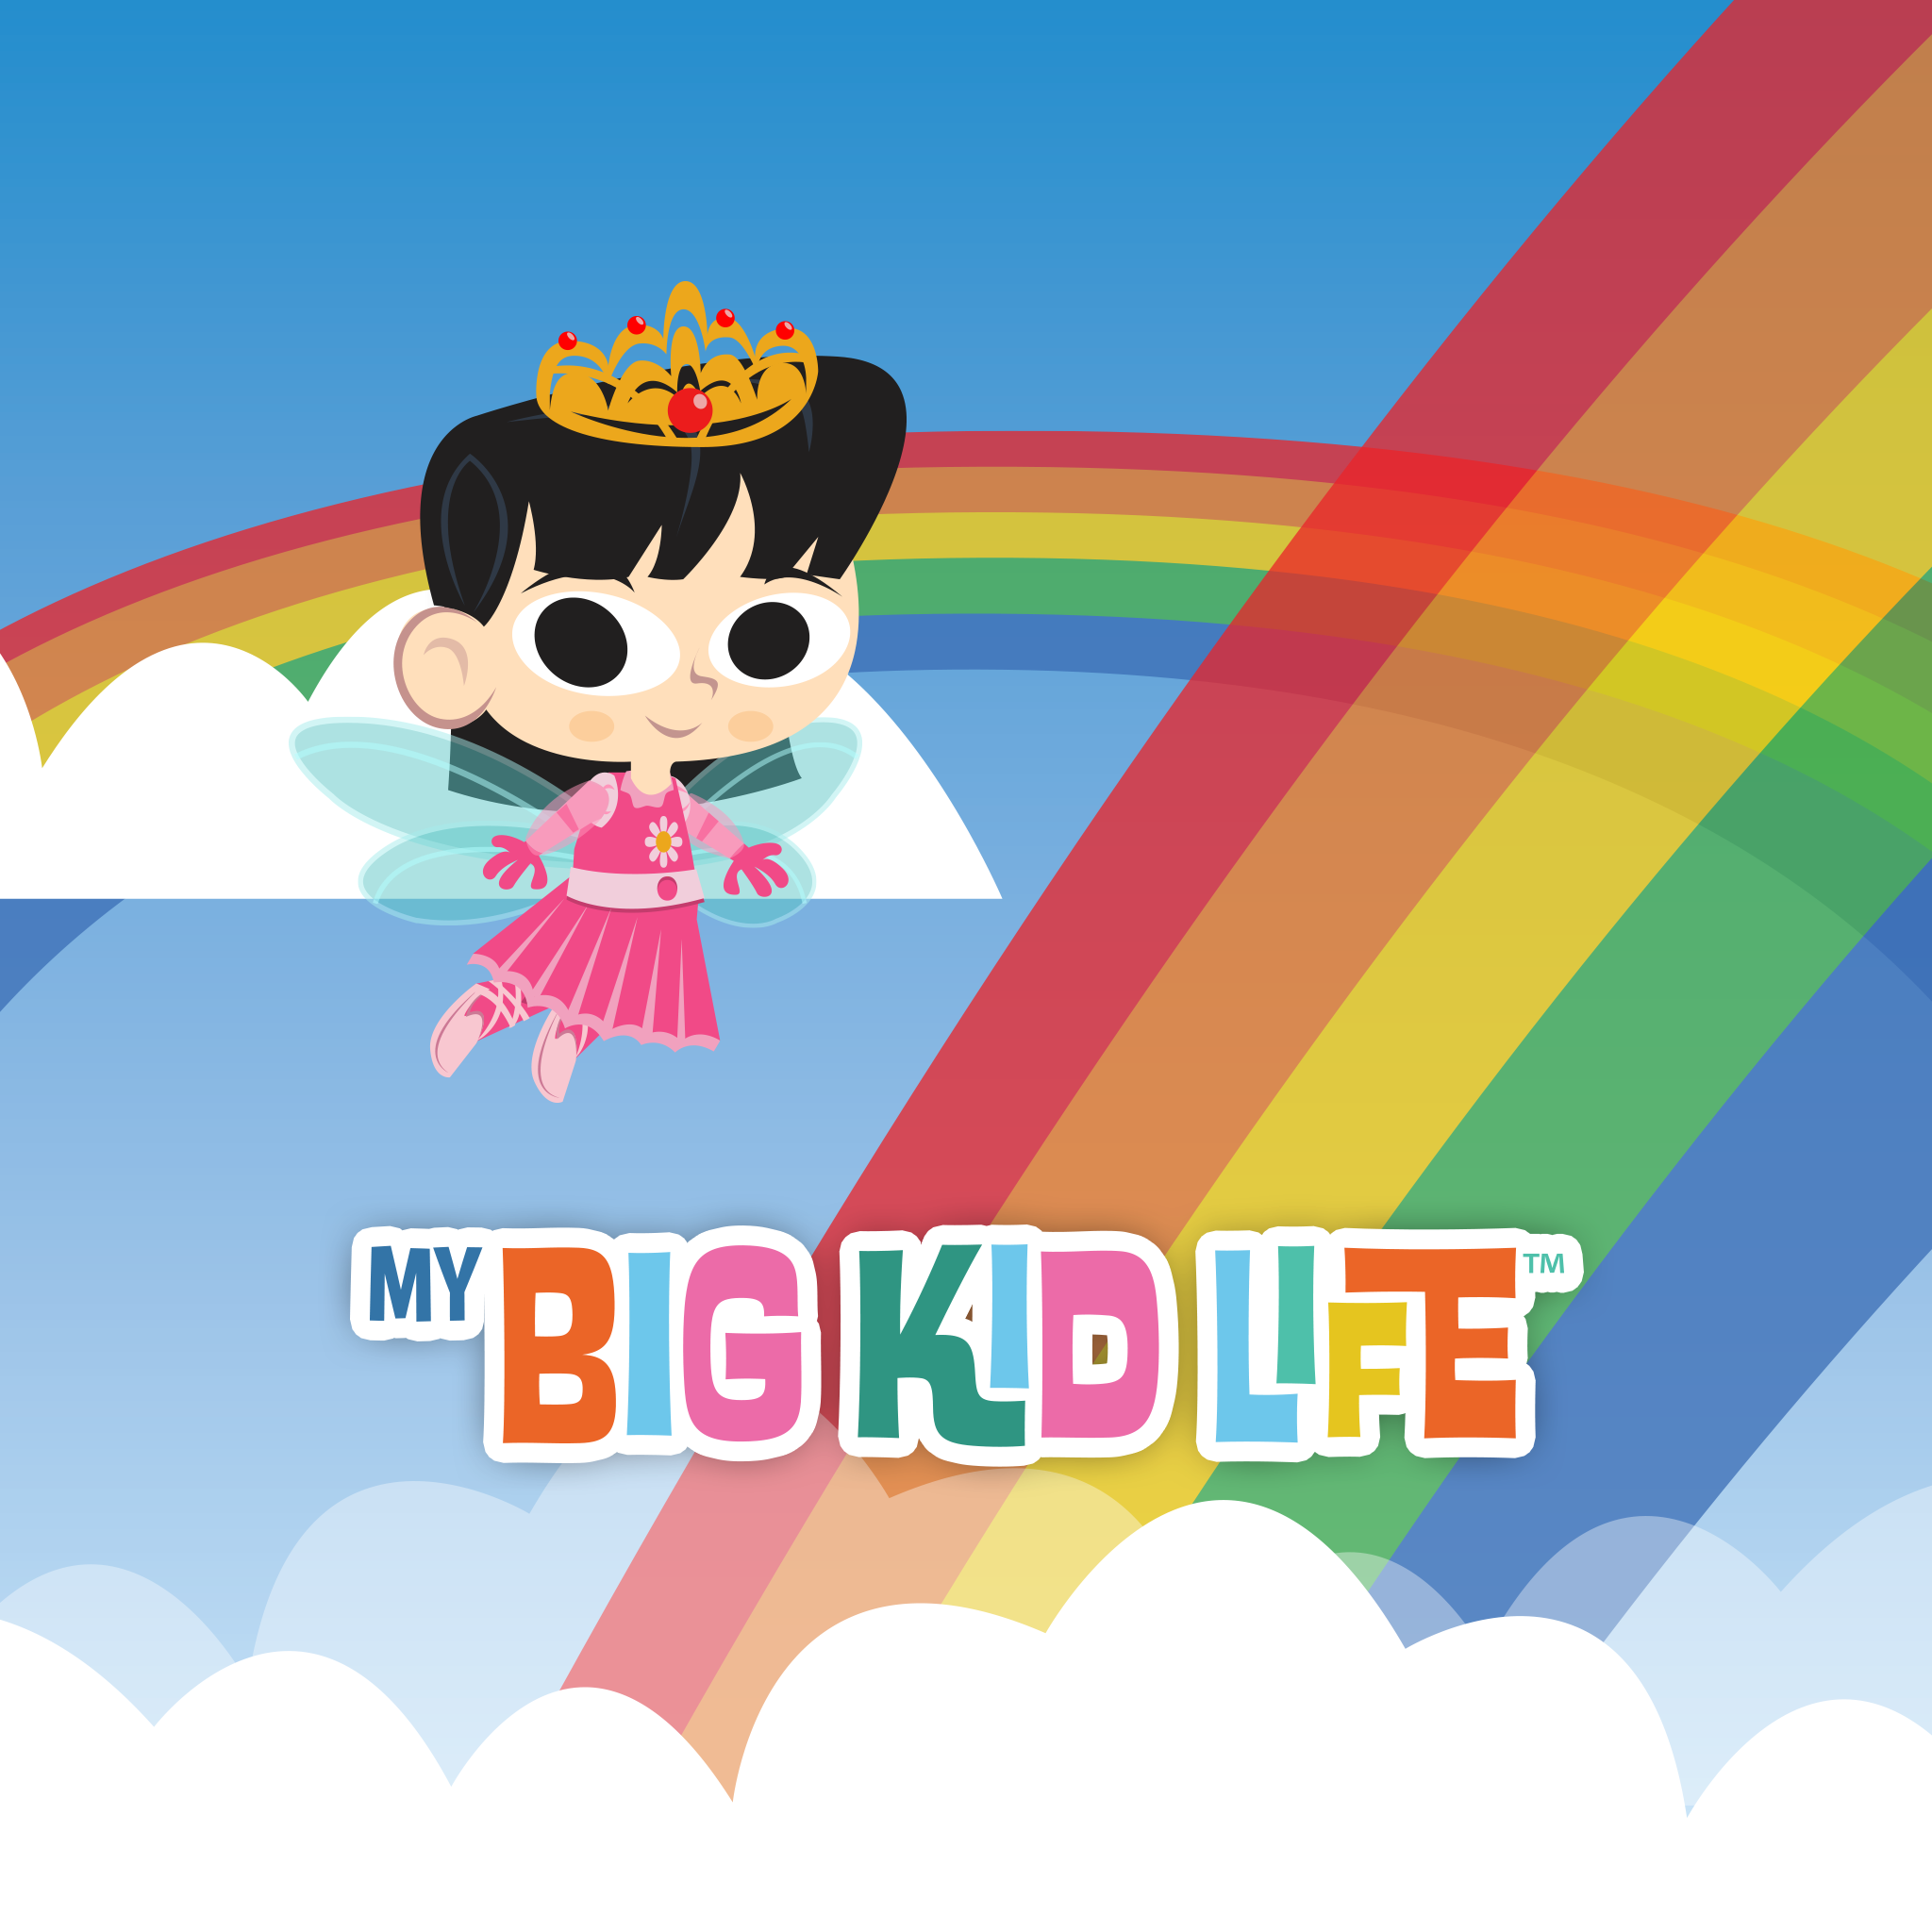 This Colorful Big Kid Life Fairy Princess Background From Fingerprint Is Perfect For Your Mobile Device Or Tablet Wallpaper App Iphone Wallpaper New Ipad